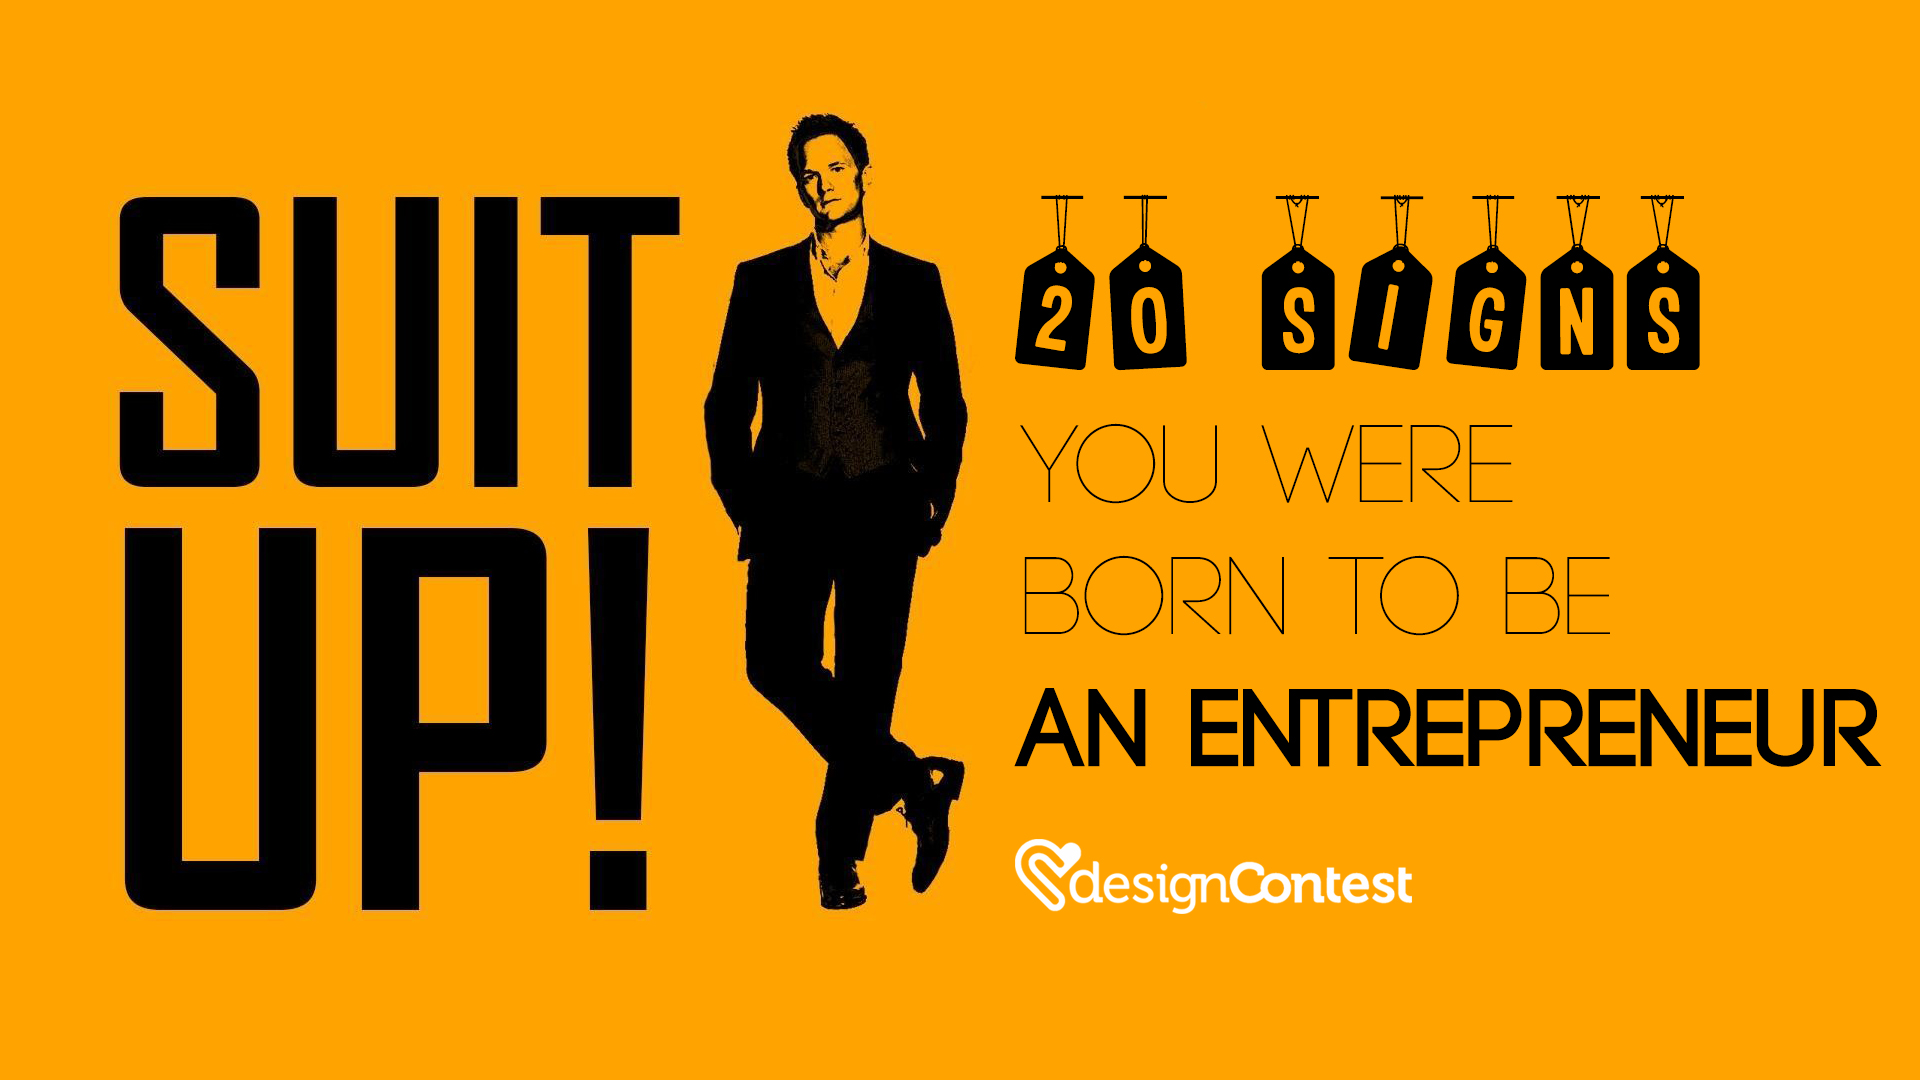 20 Signs You Were Born to Be an Entrepreneur